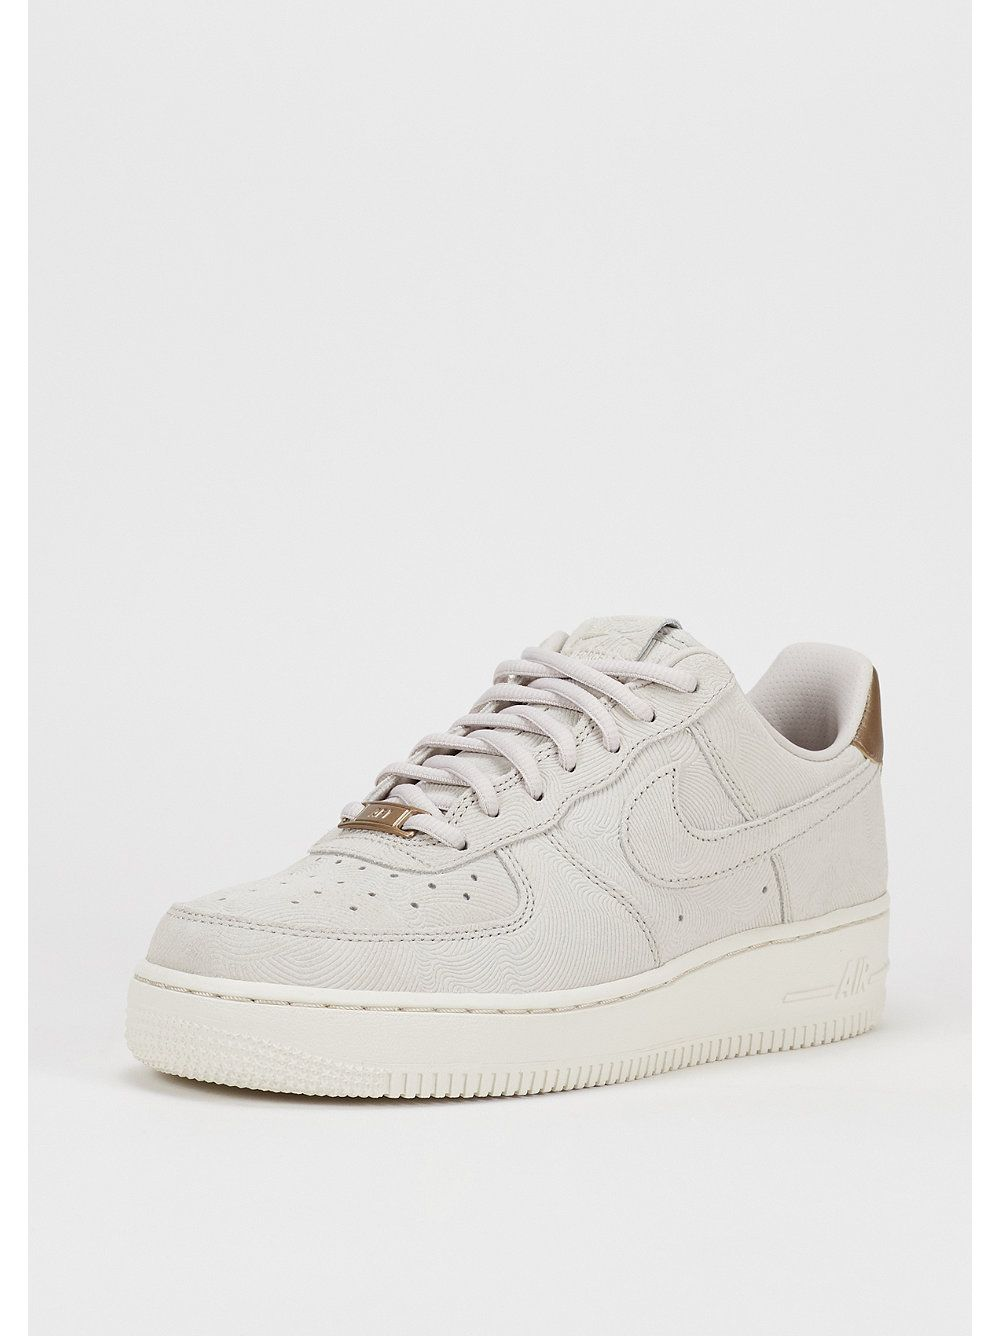 nike air force 1 07 premium suede leather